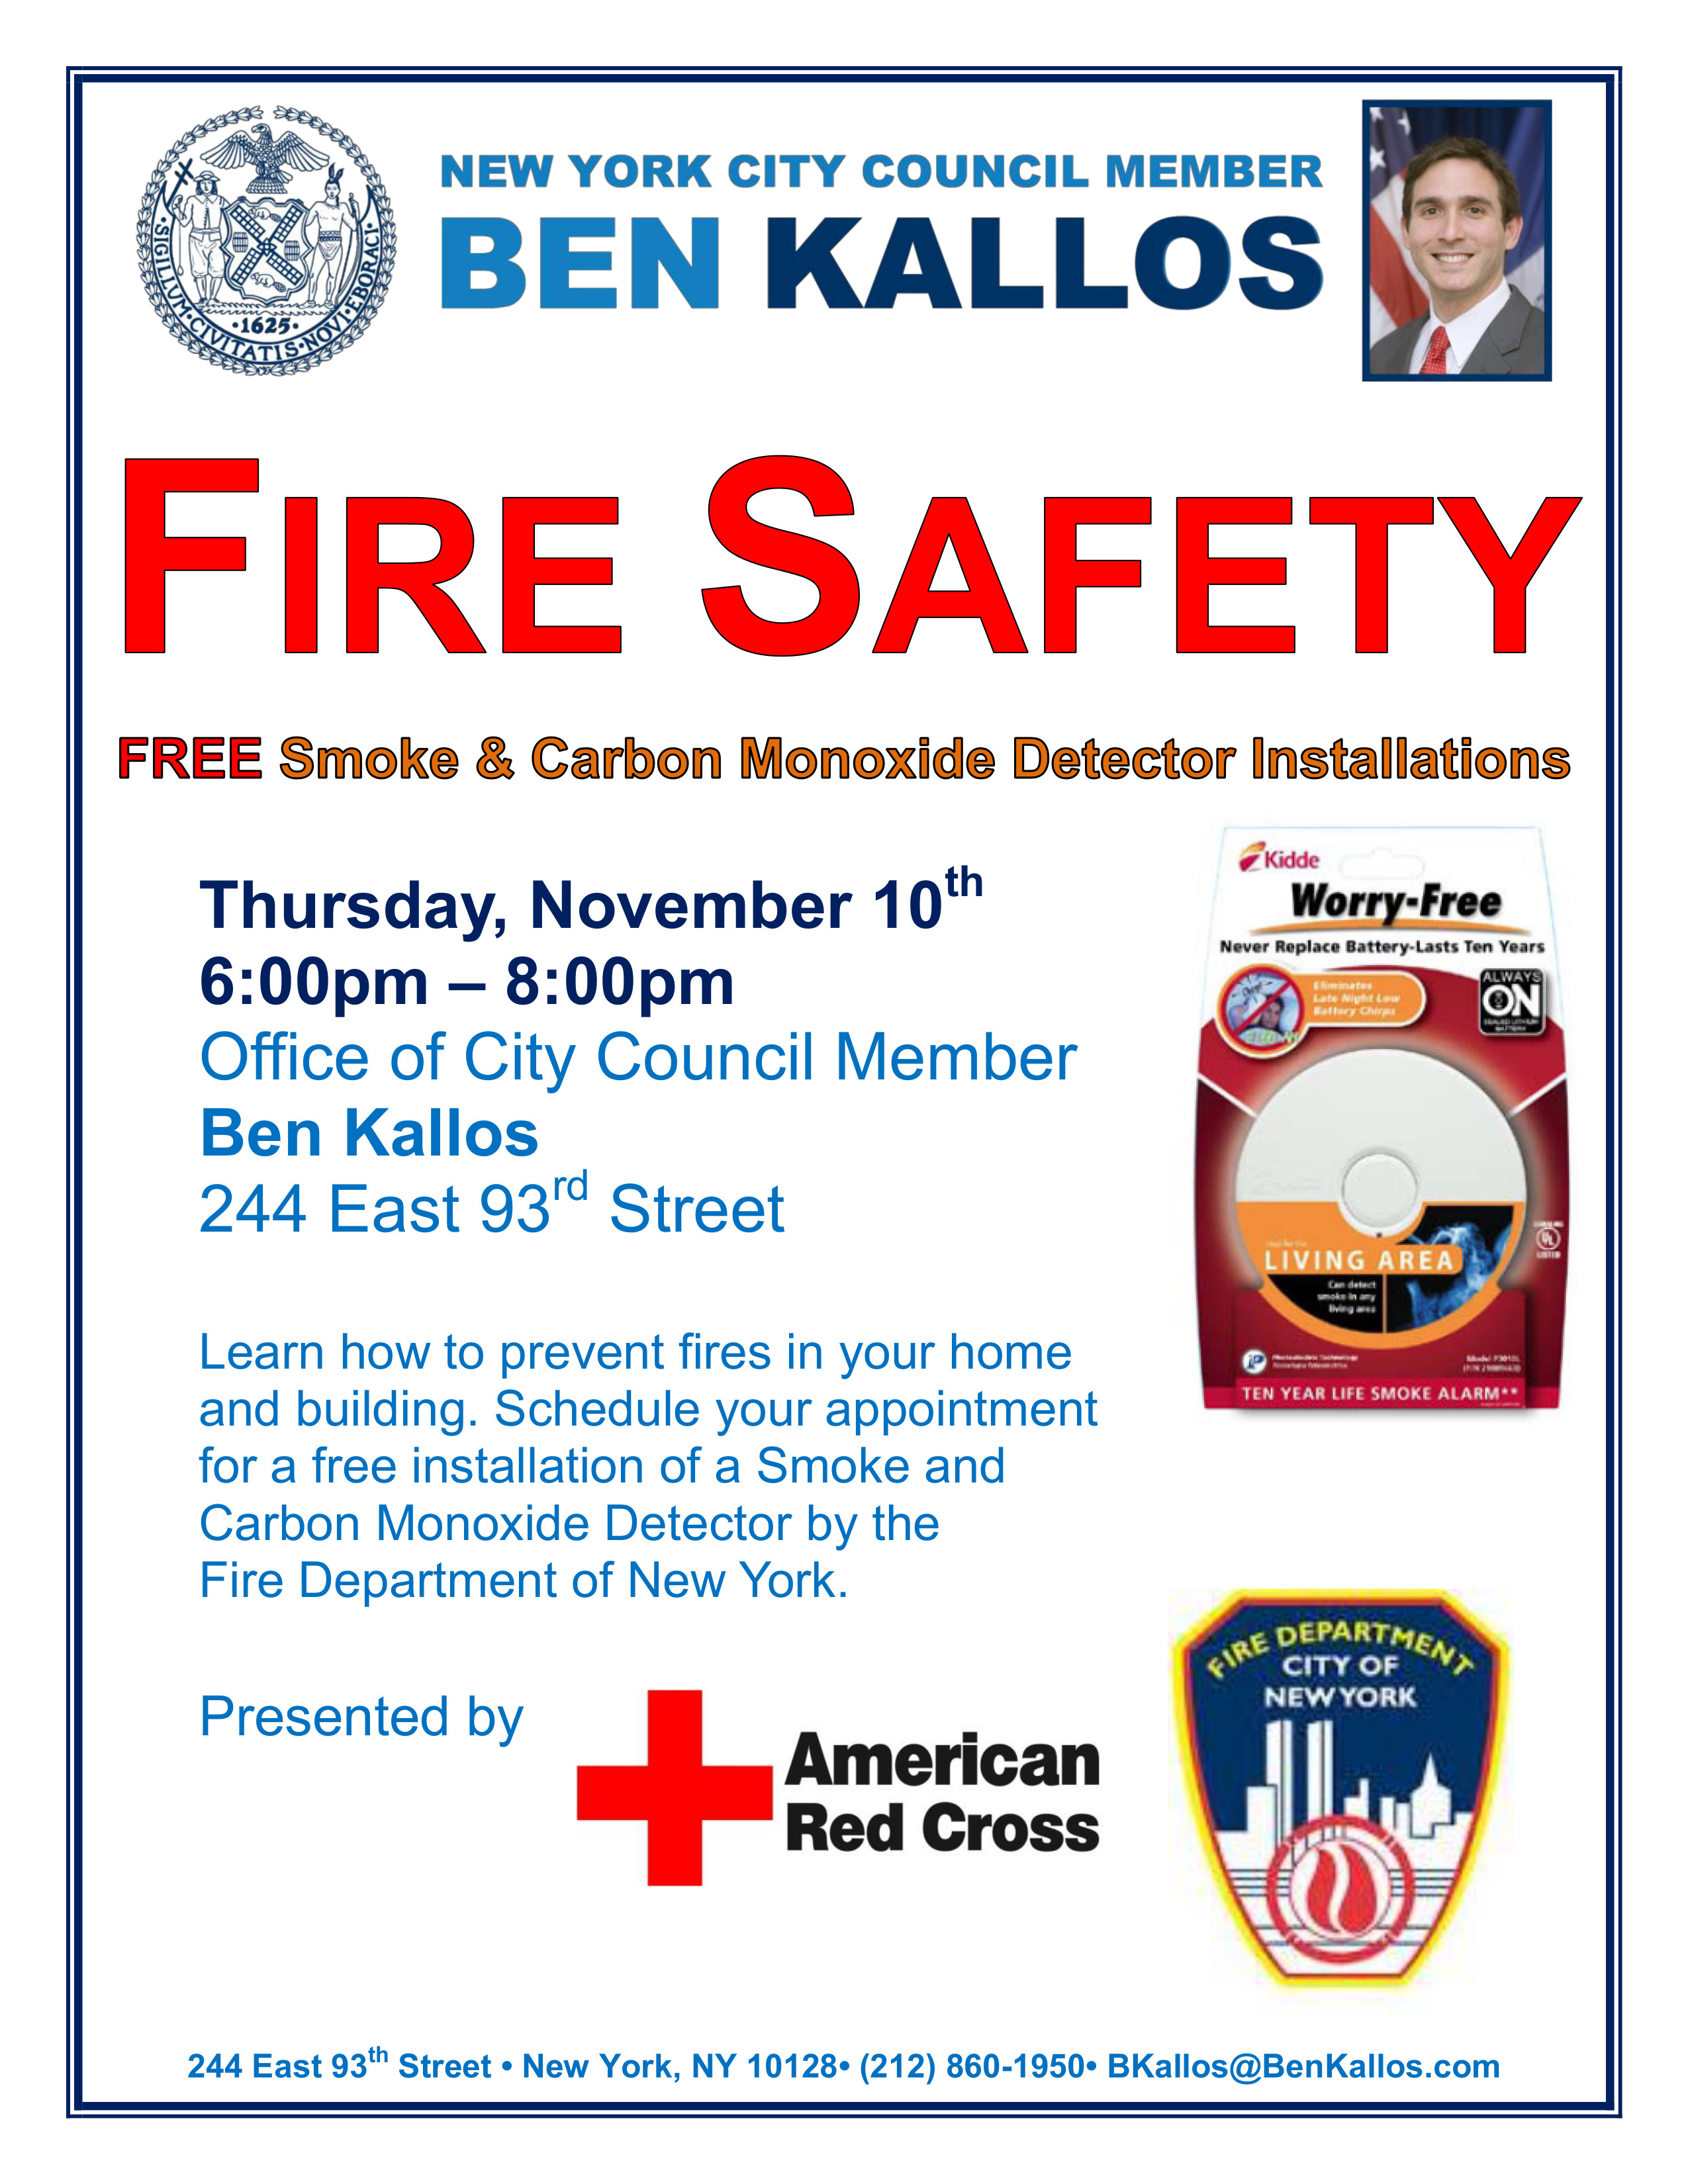 Fire Safety Free Smoke And Carbon Monoxide Detector